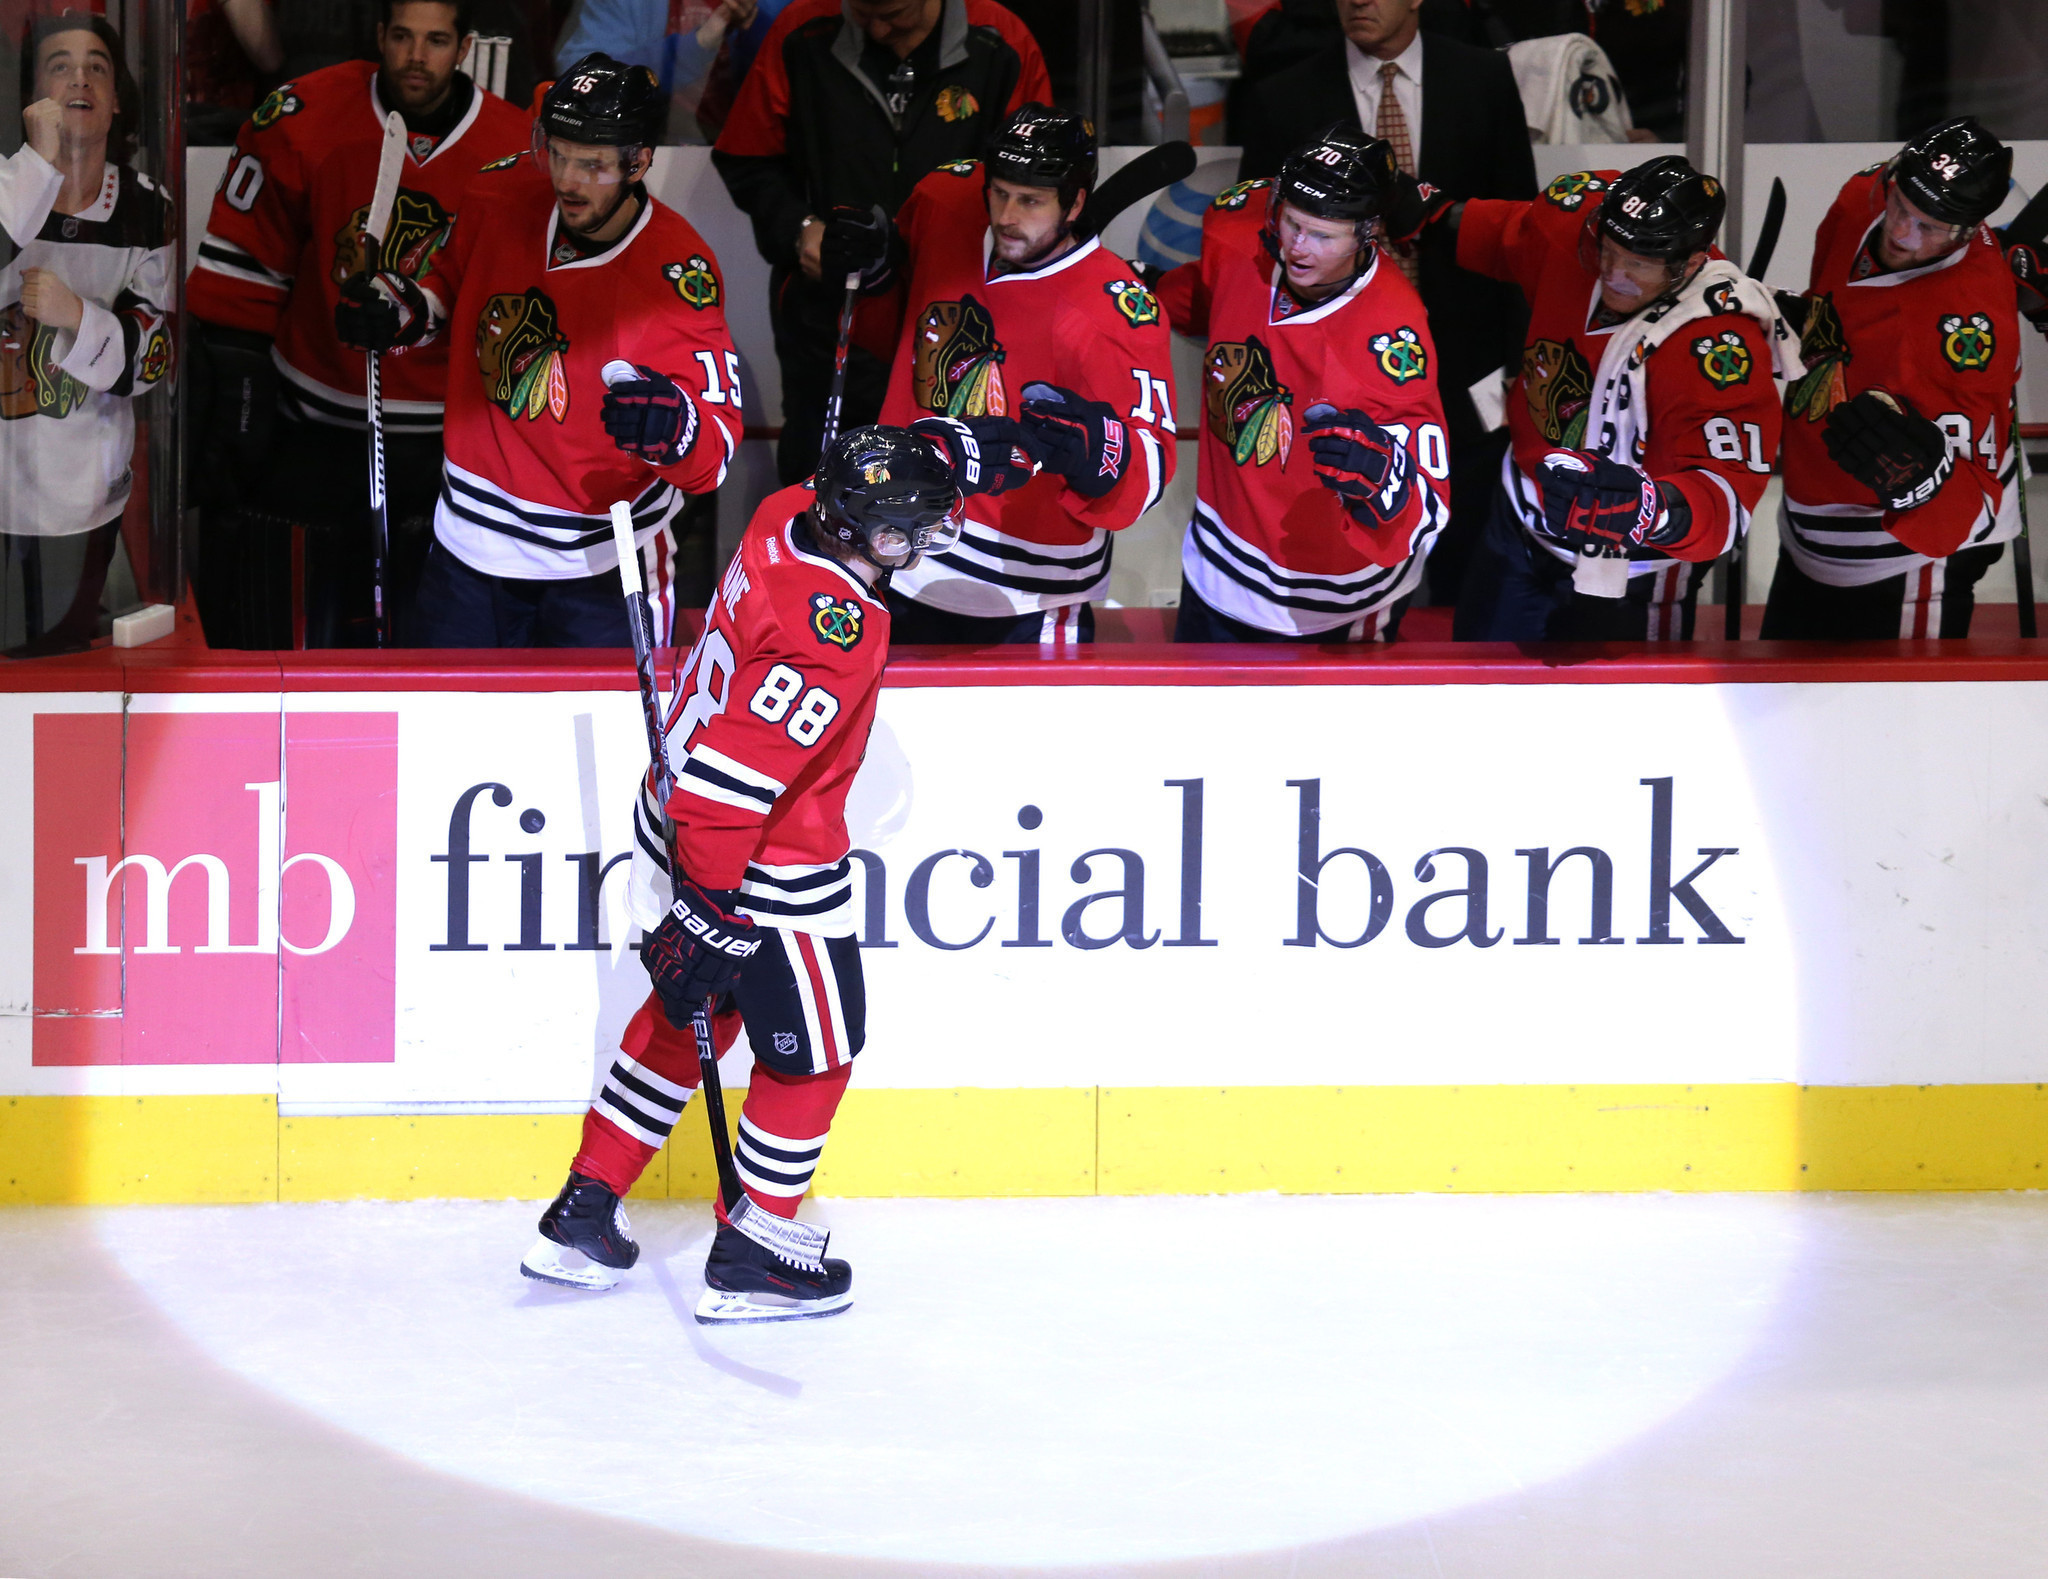 Ct-toews-kane-pairing-blackhawks-spt-0213-20160212